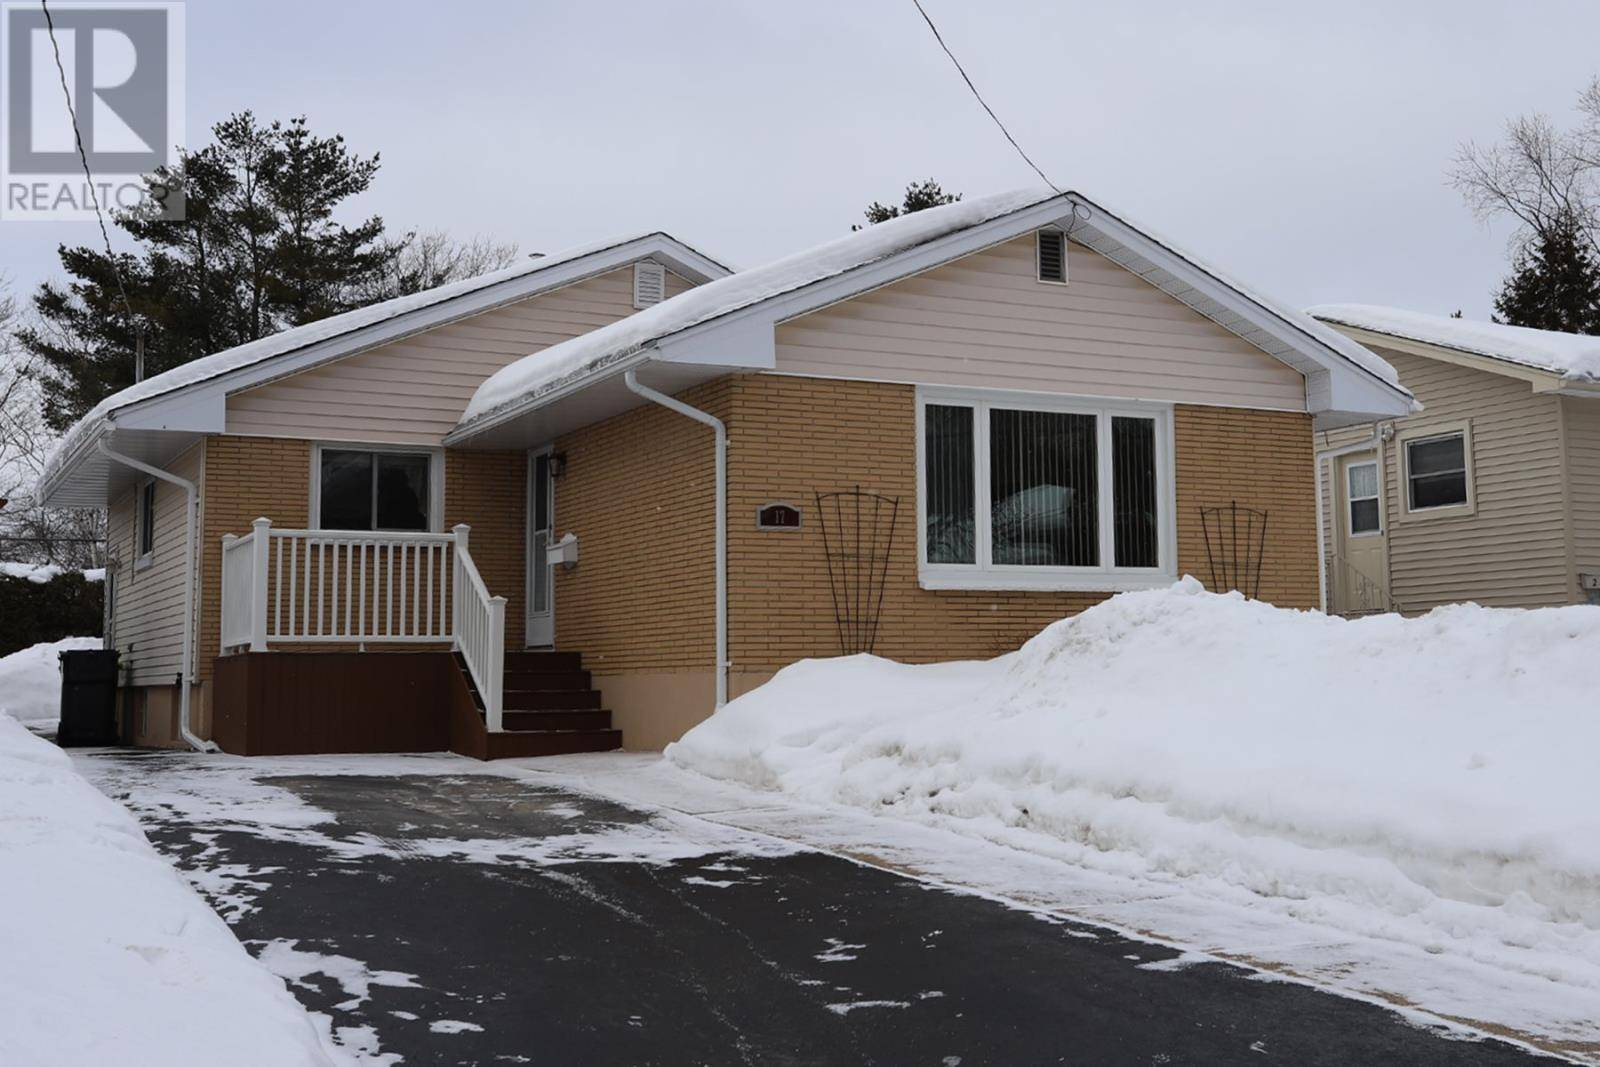 House for sale at 17 Moluch St Sault Ste. Marie Ontario - MLS: SM127885